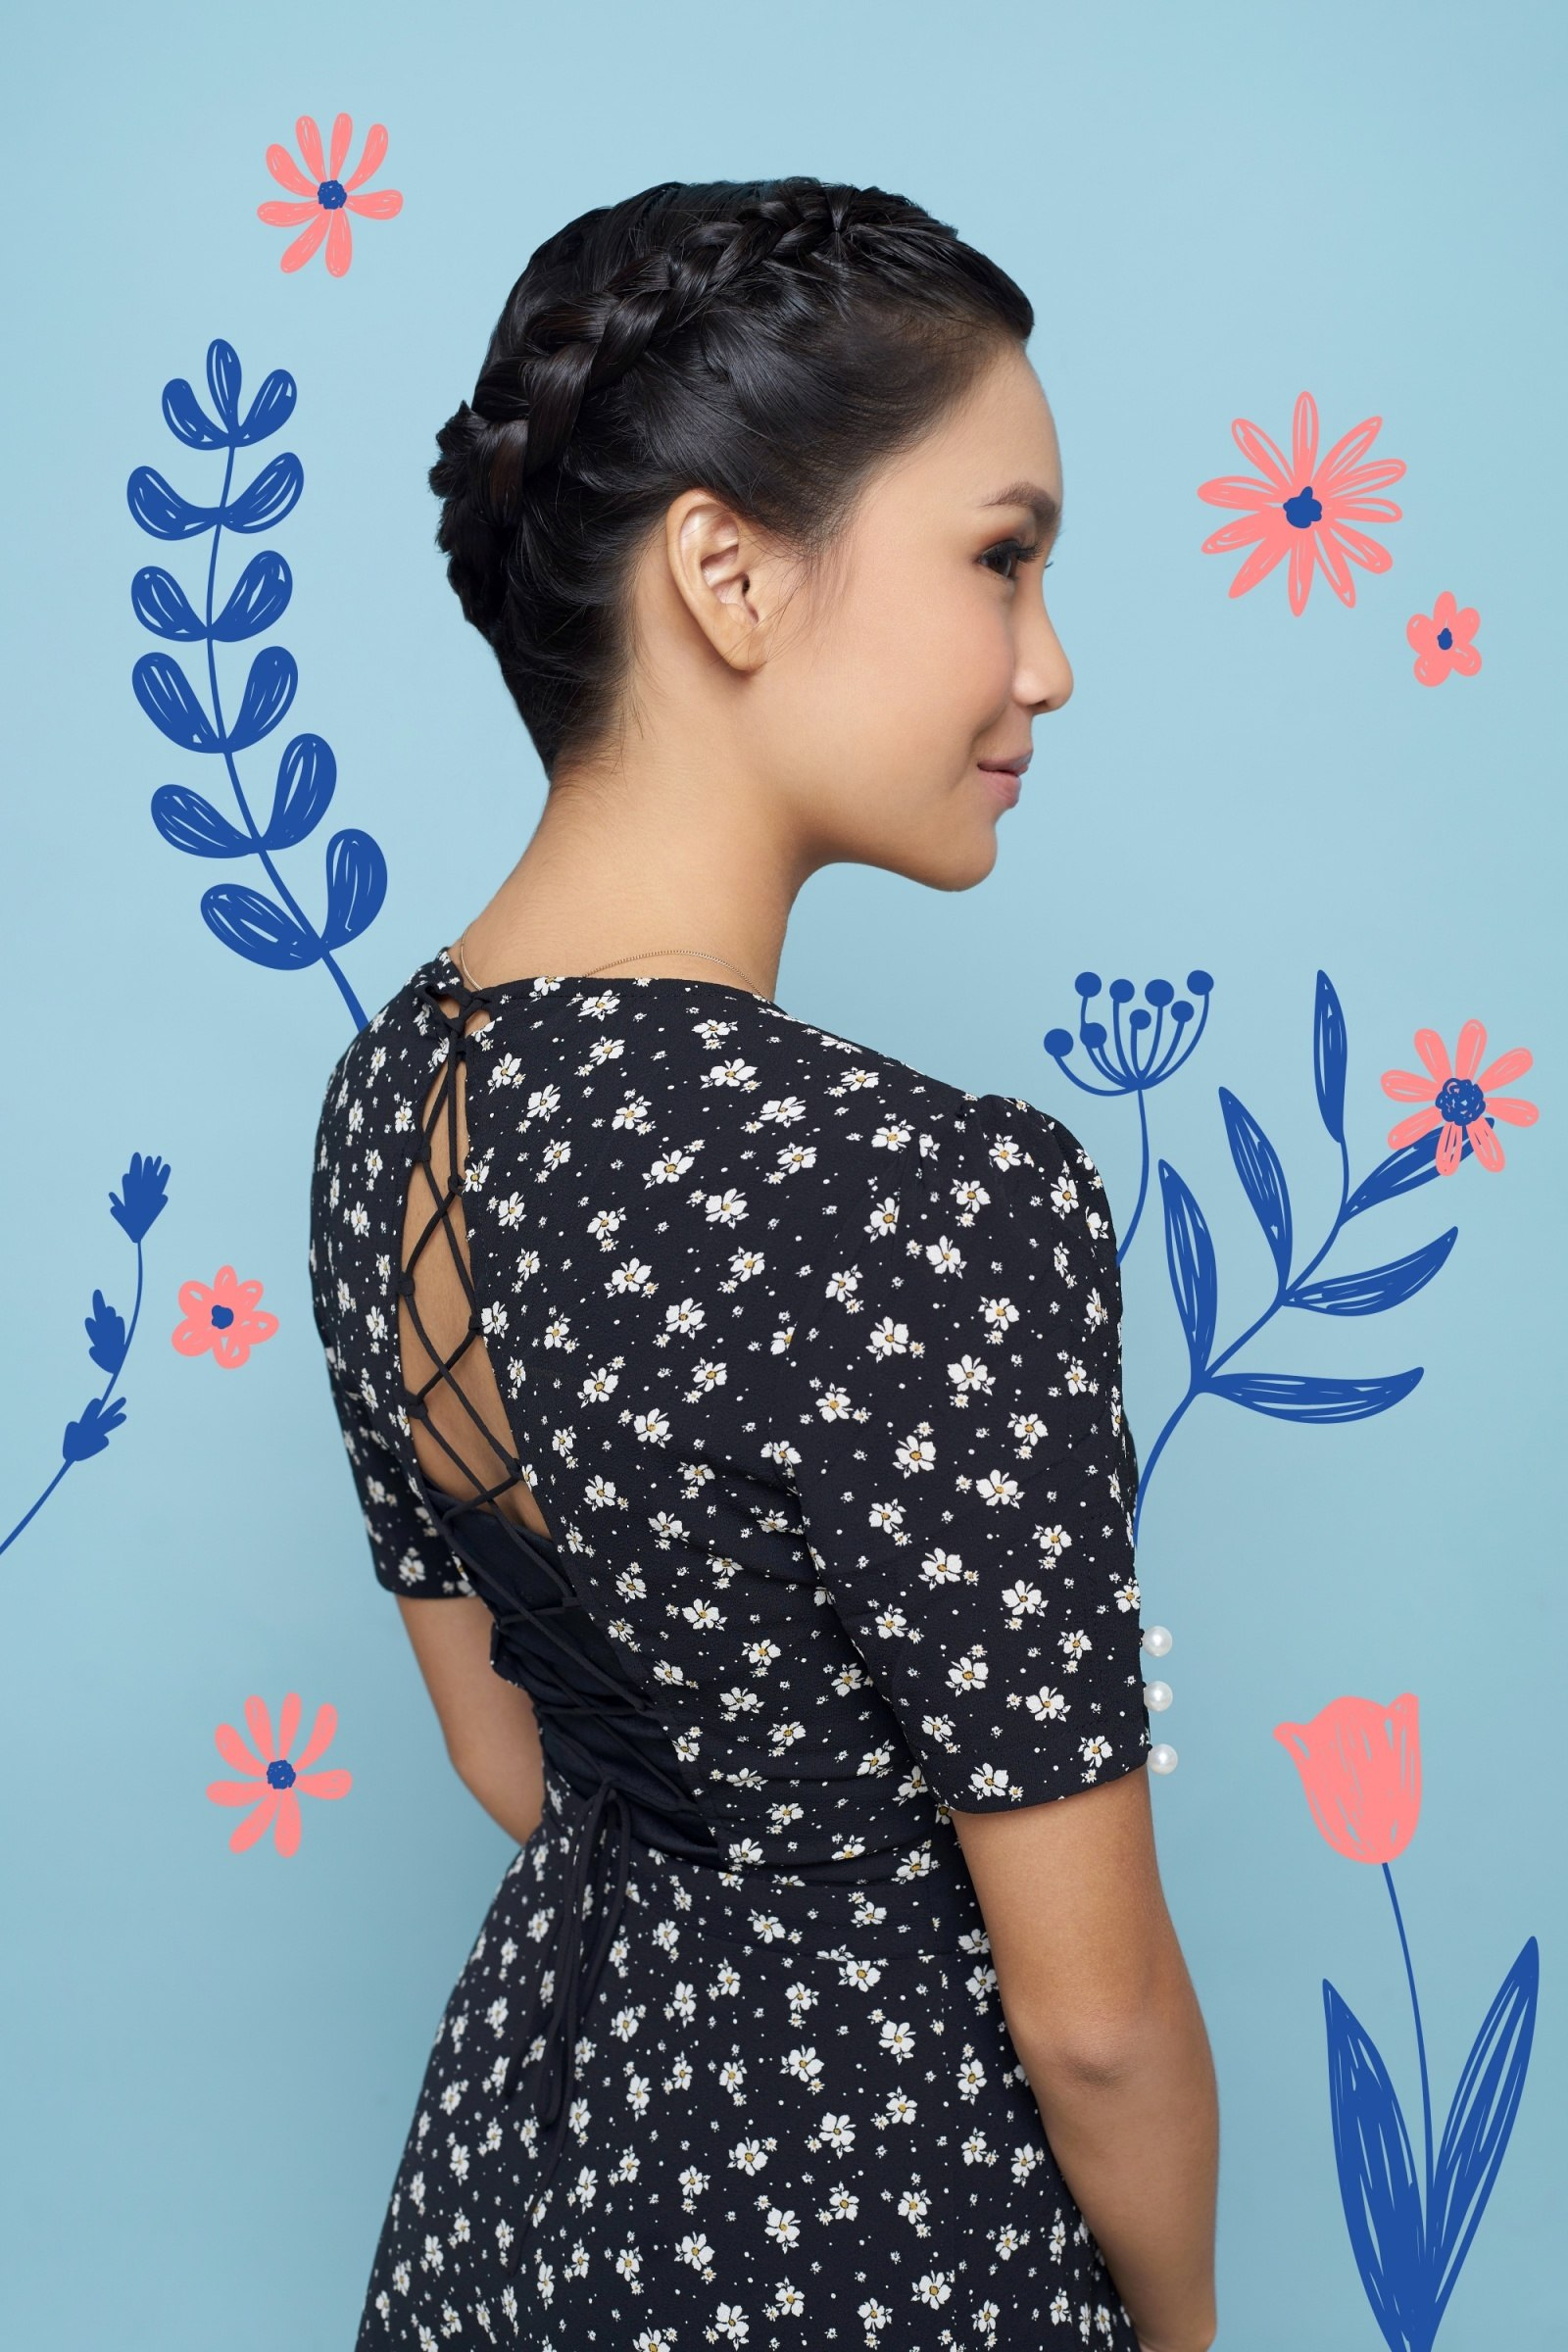 Flored De Mayo hairstyles: Side view of an Asian woman with black hair in a halo braid